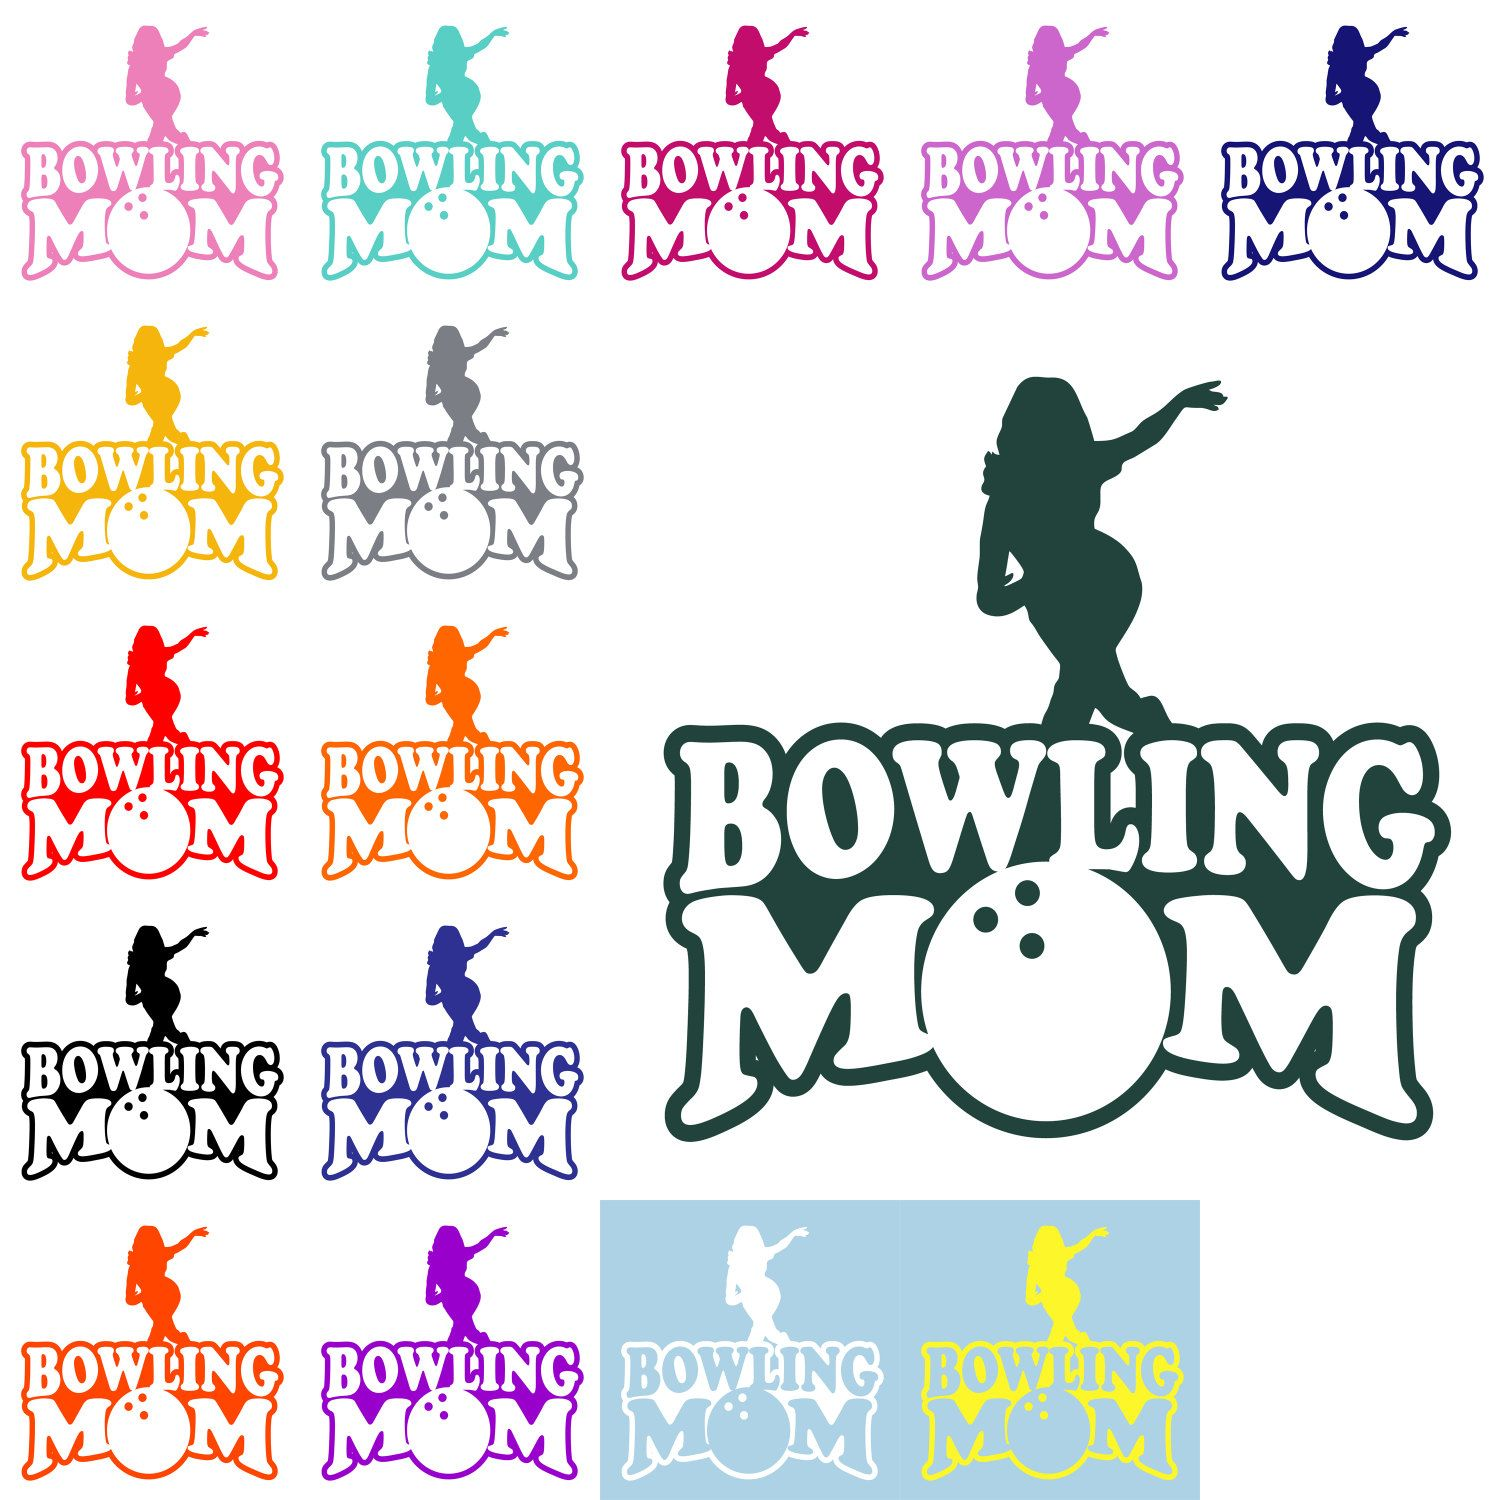 BOWLING MOM DECAL Bowling Mom Sticker Mom Decal Sports Mom - Window decals for sports